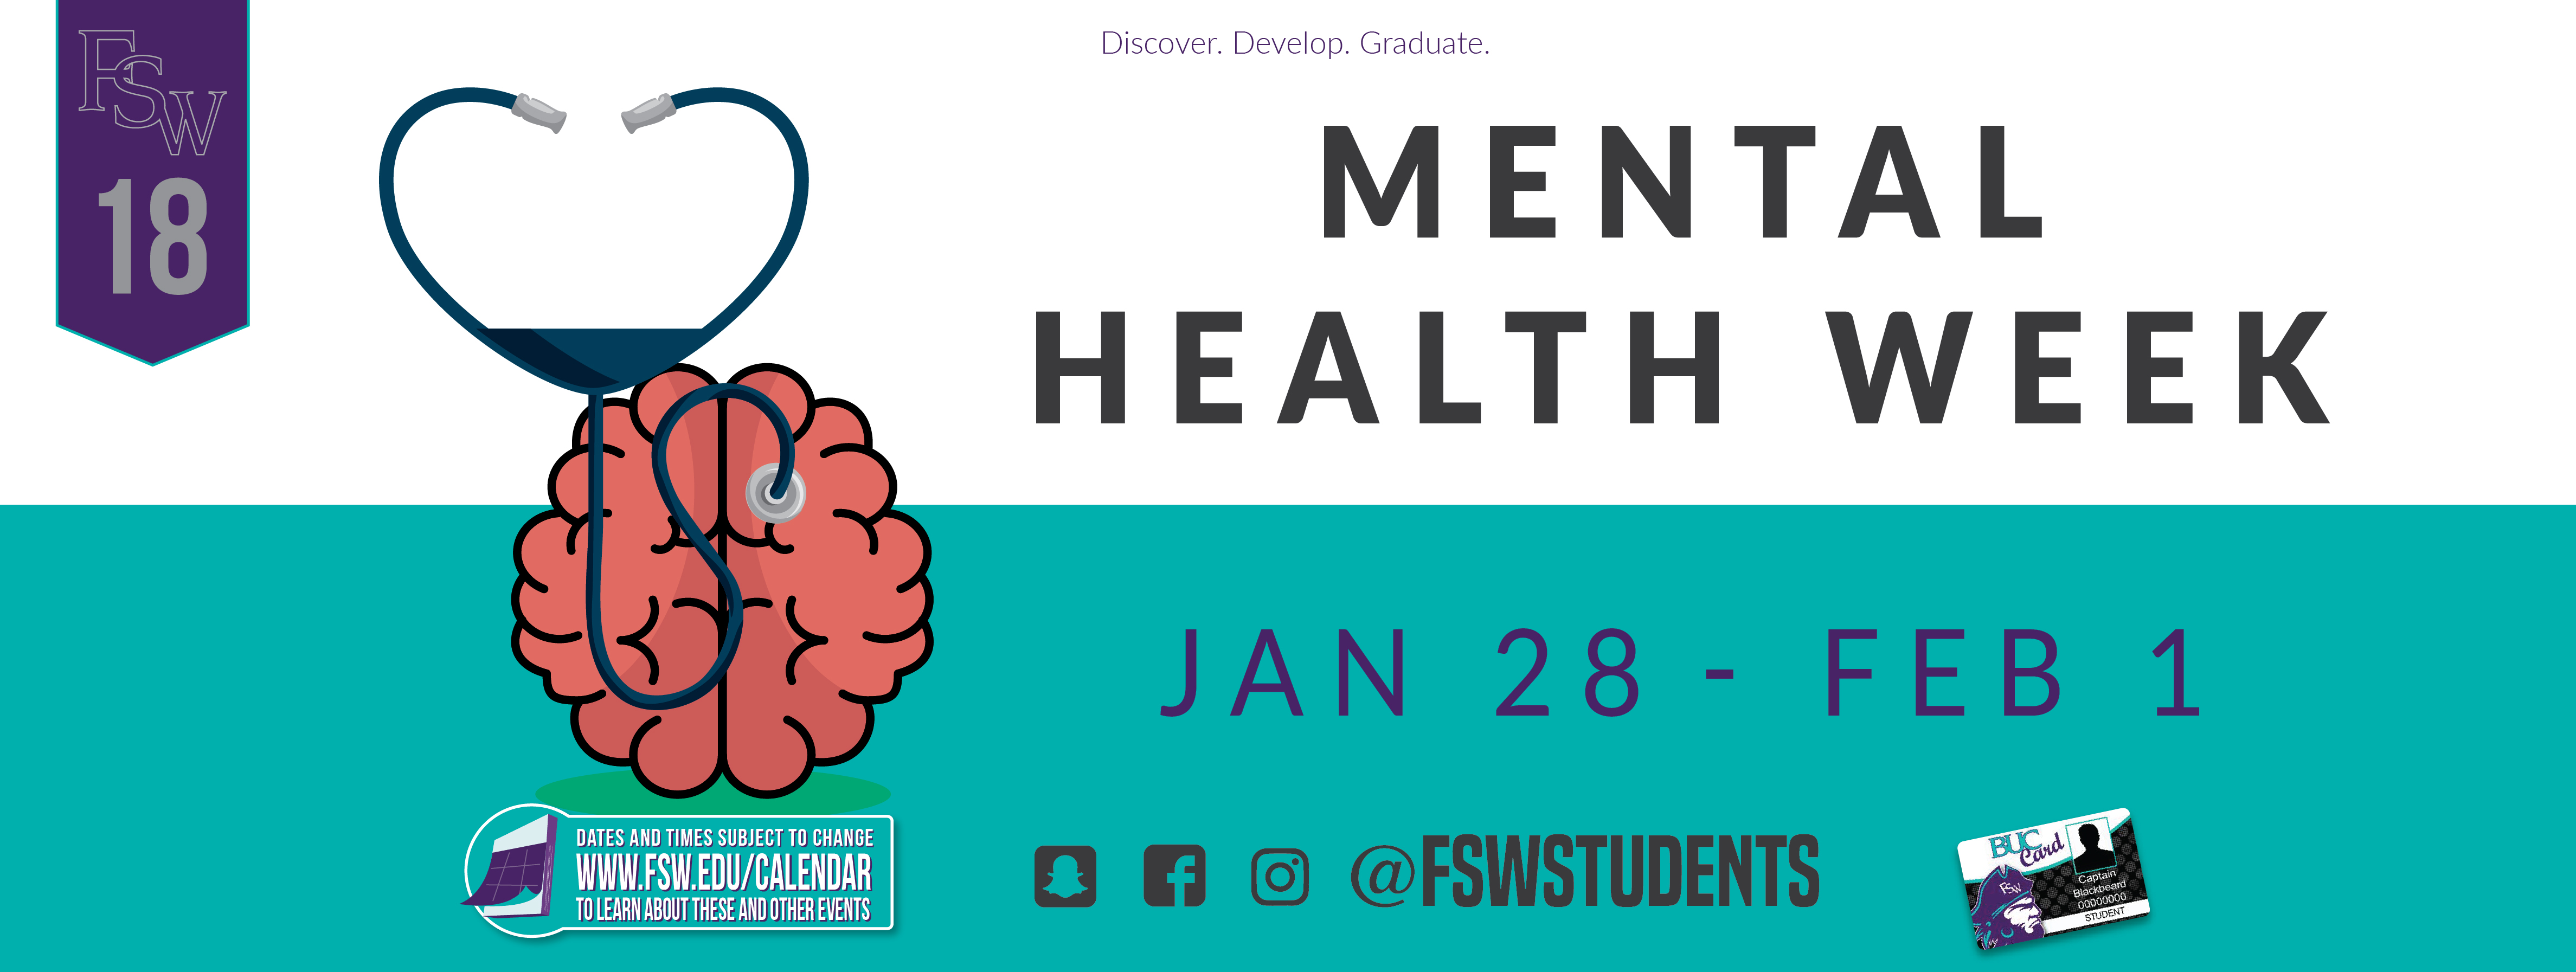 Mental Health Week January 28 - February 1, 2019